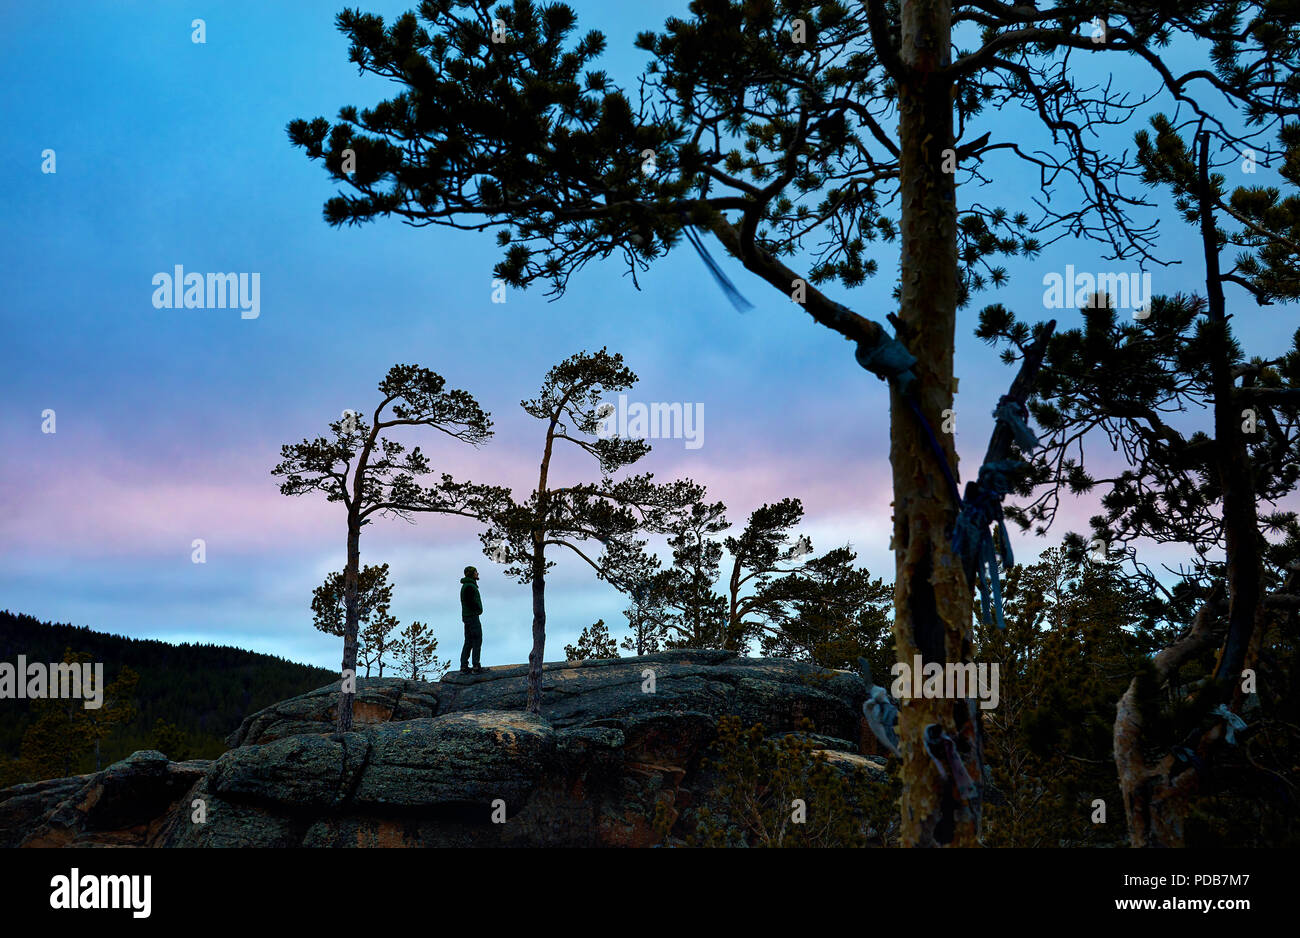 Man in silhouette between Pine trees of Karkaraly national park in Central Kazakhstan at purple sunset - Stock Image